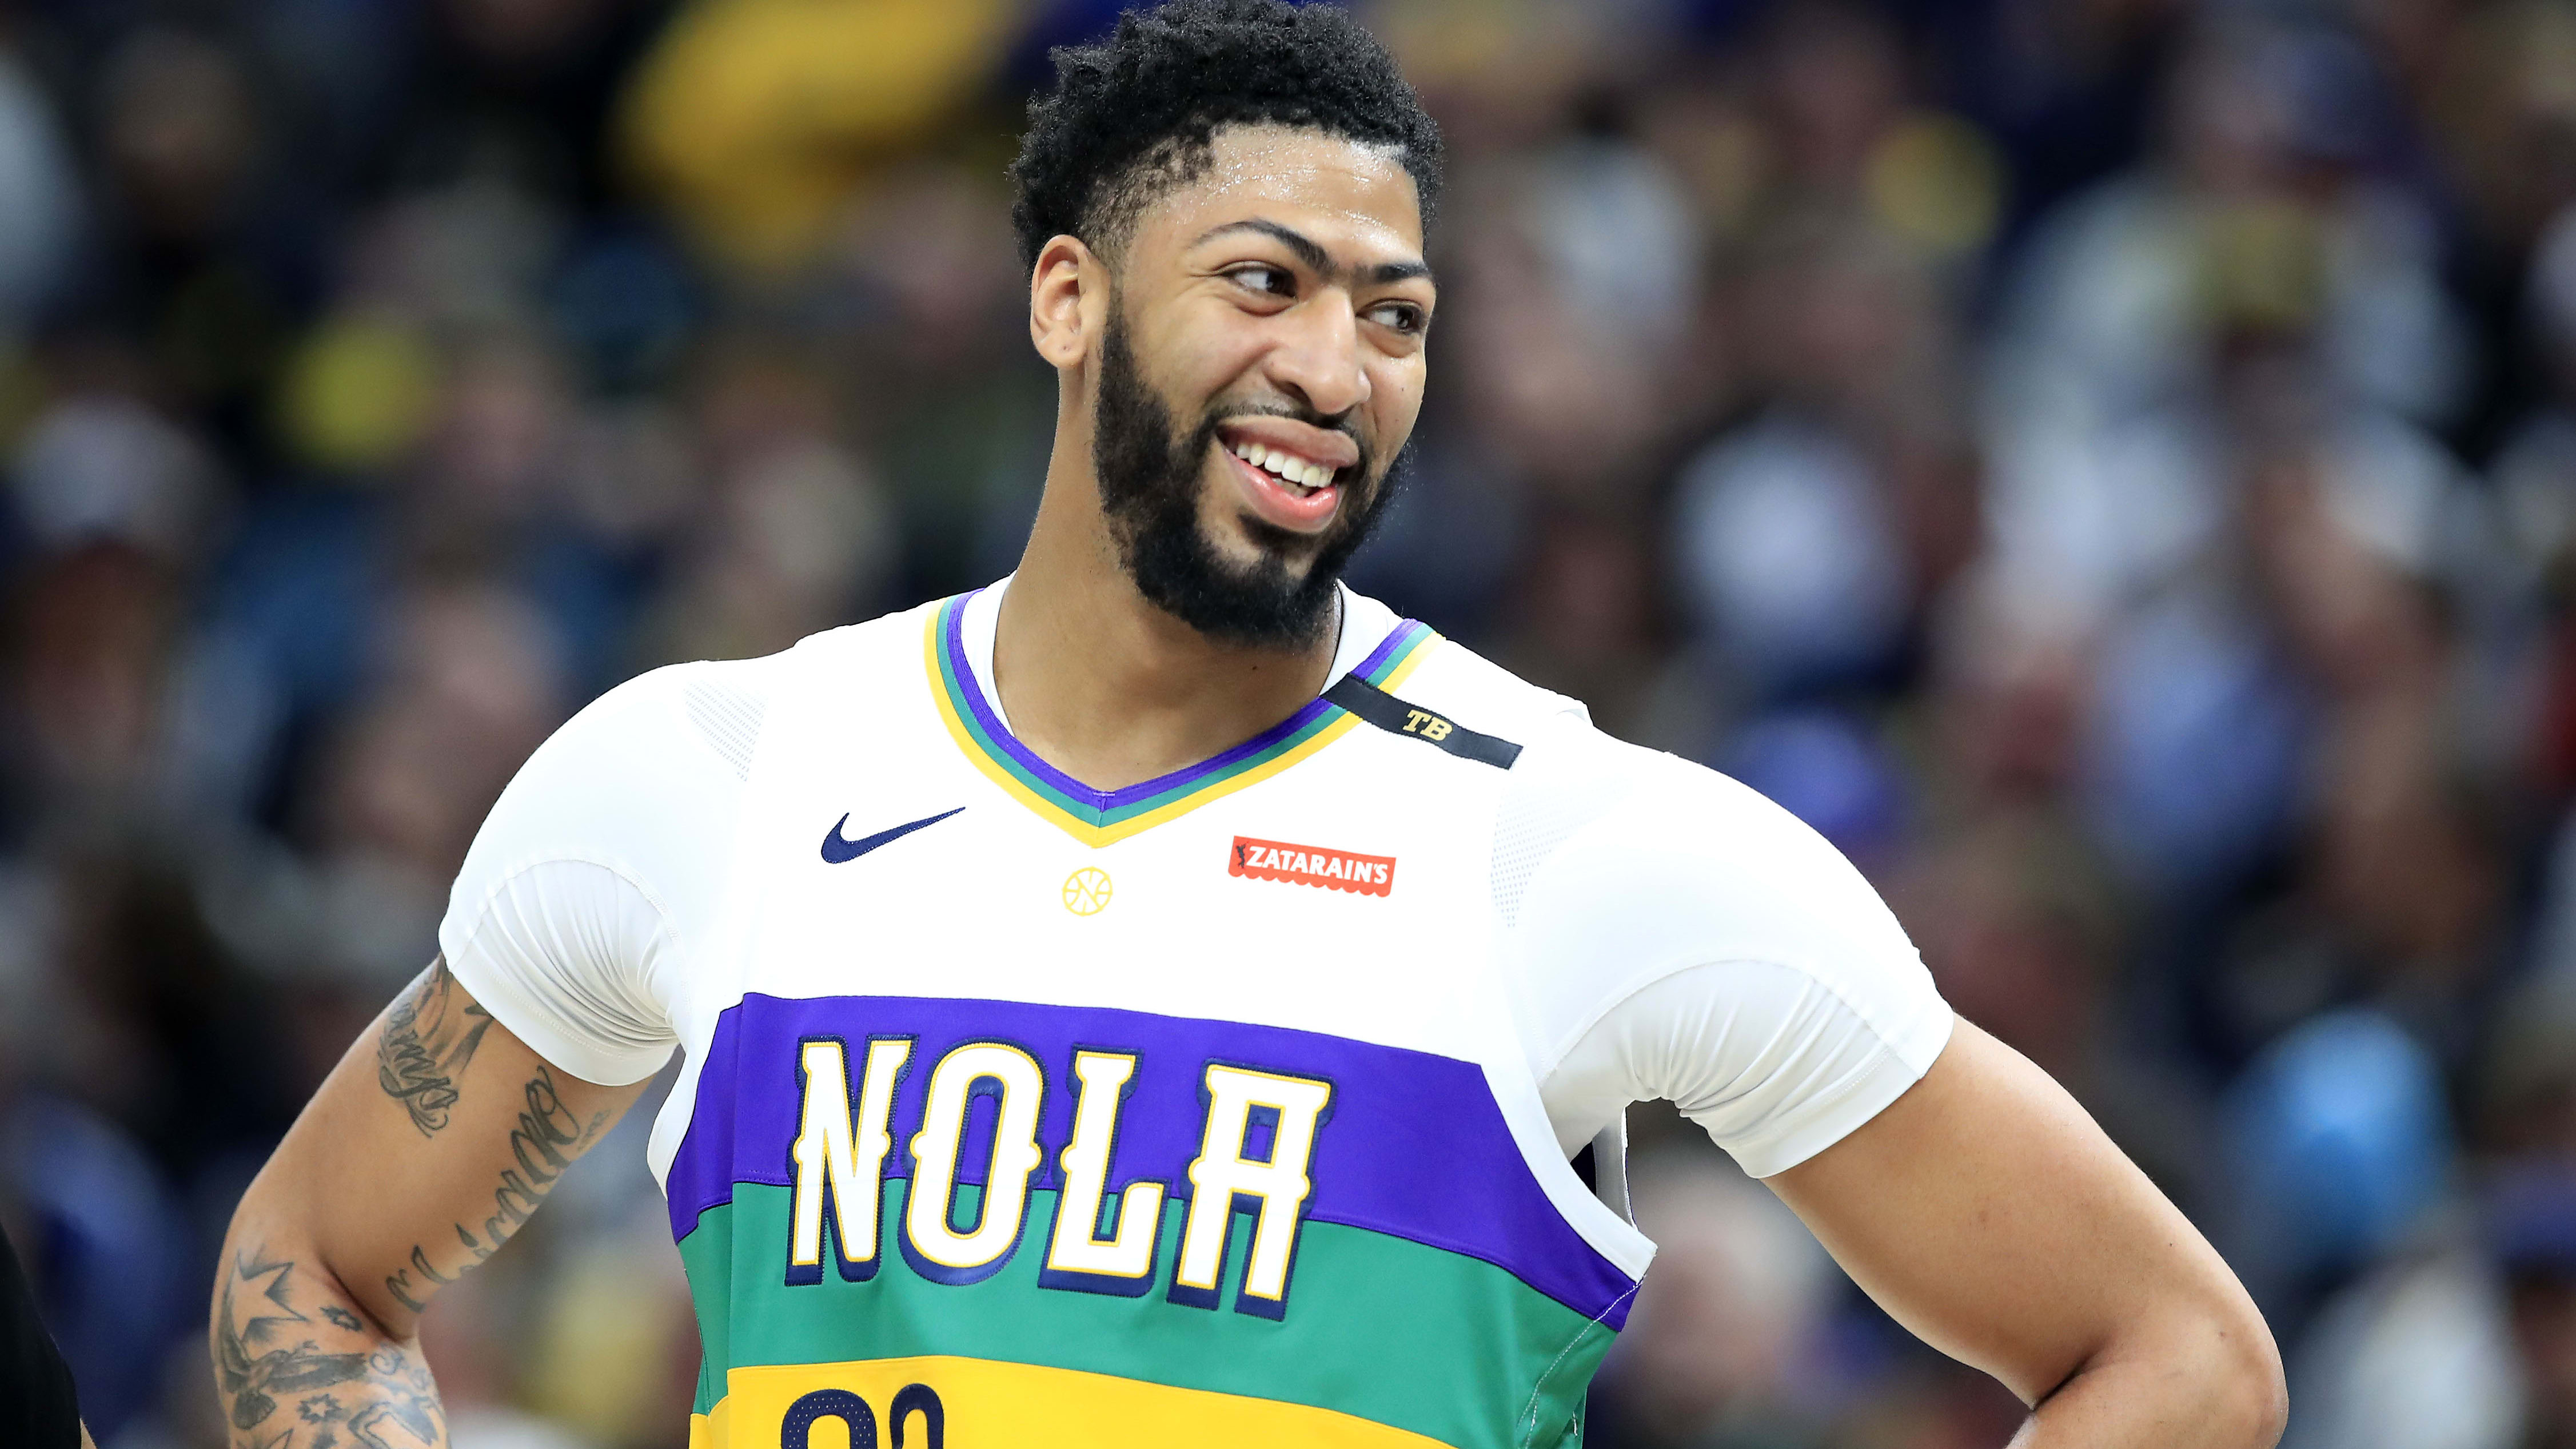 INDIANAPOLIS, INDIANA - FEBRUARY 22:   Anthony Davis #23 of the New Orleans Pelicans watches the action against the Indiana Pacers at Bankers Life Fieldhouse on February 22, 2019 in Indianapolis, Indiana. (Photo by Andy Lyons/Getty Images)